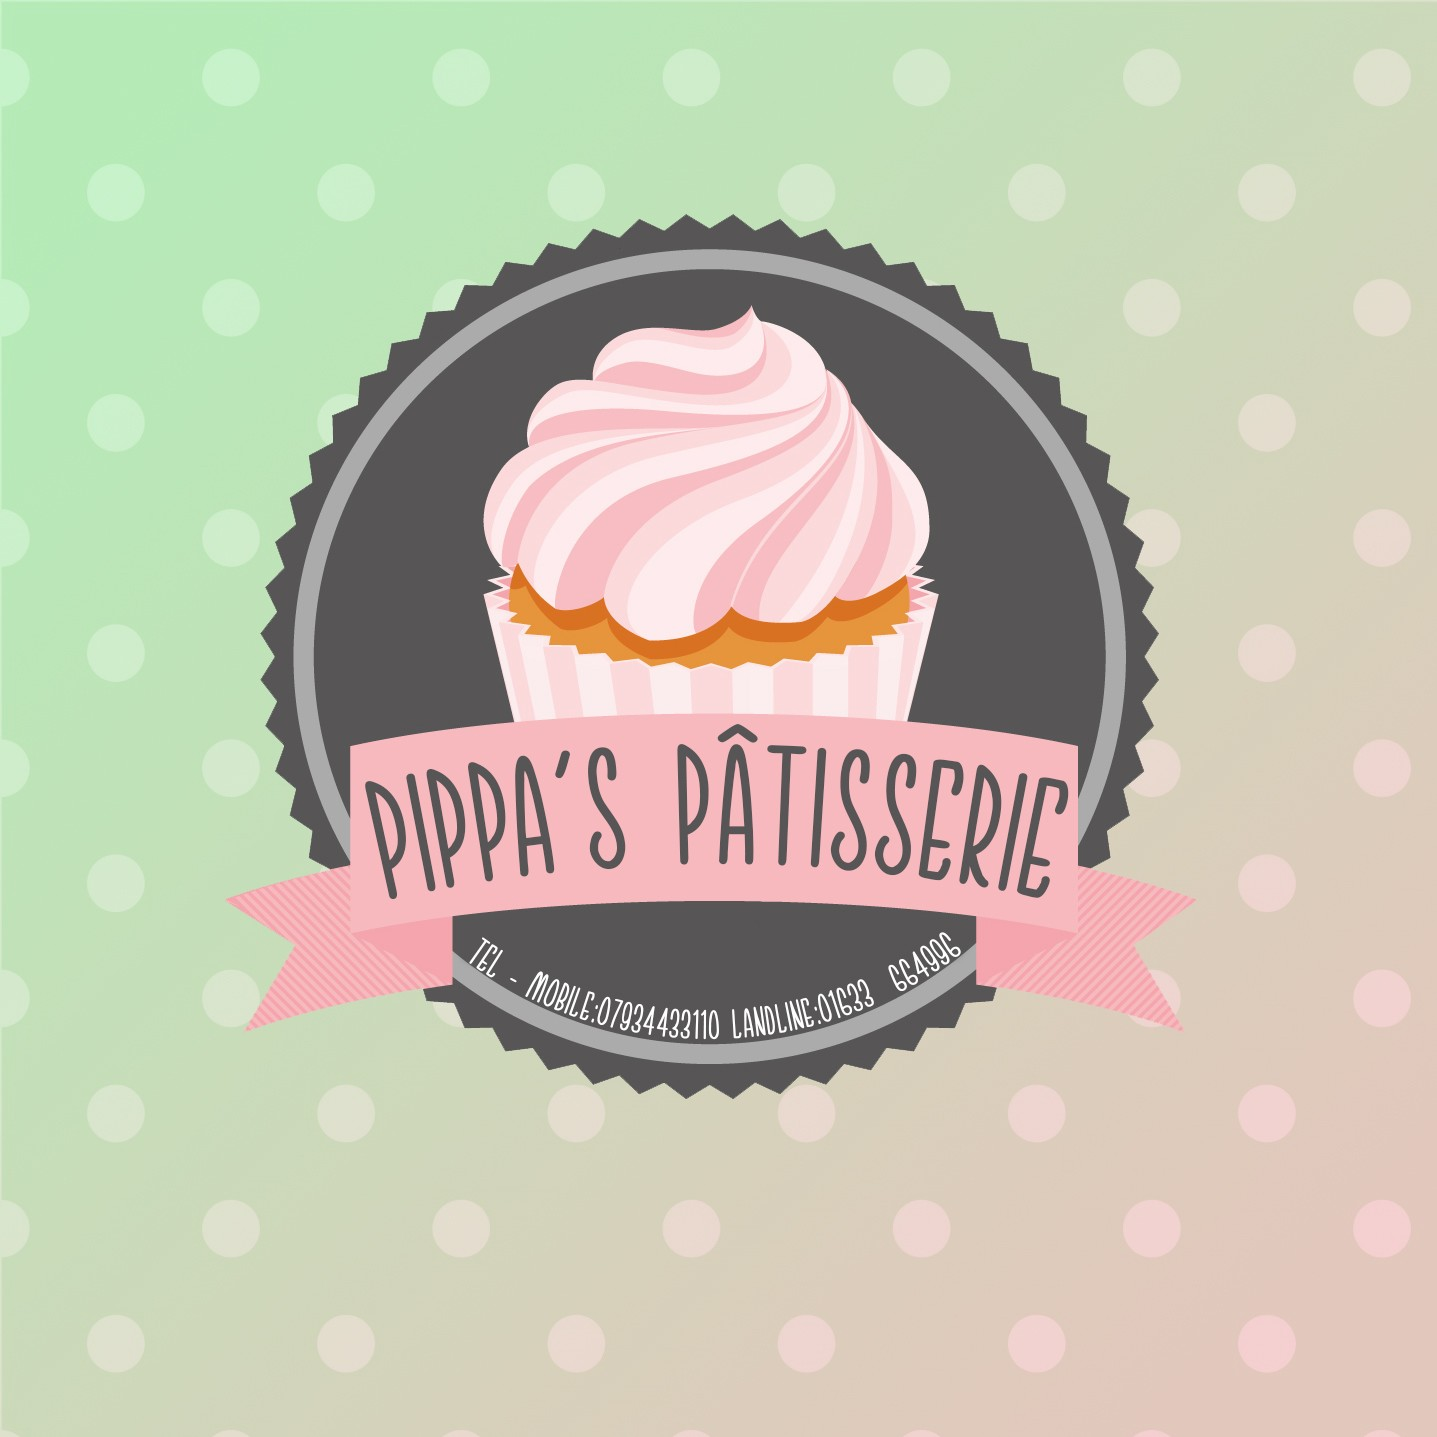 Pippas Patisserie Newport Birthday Cakes Delivered